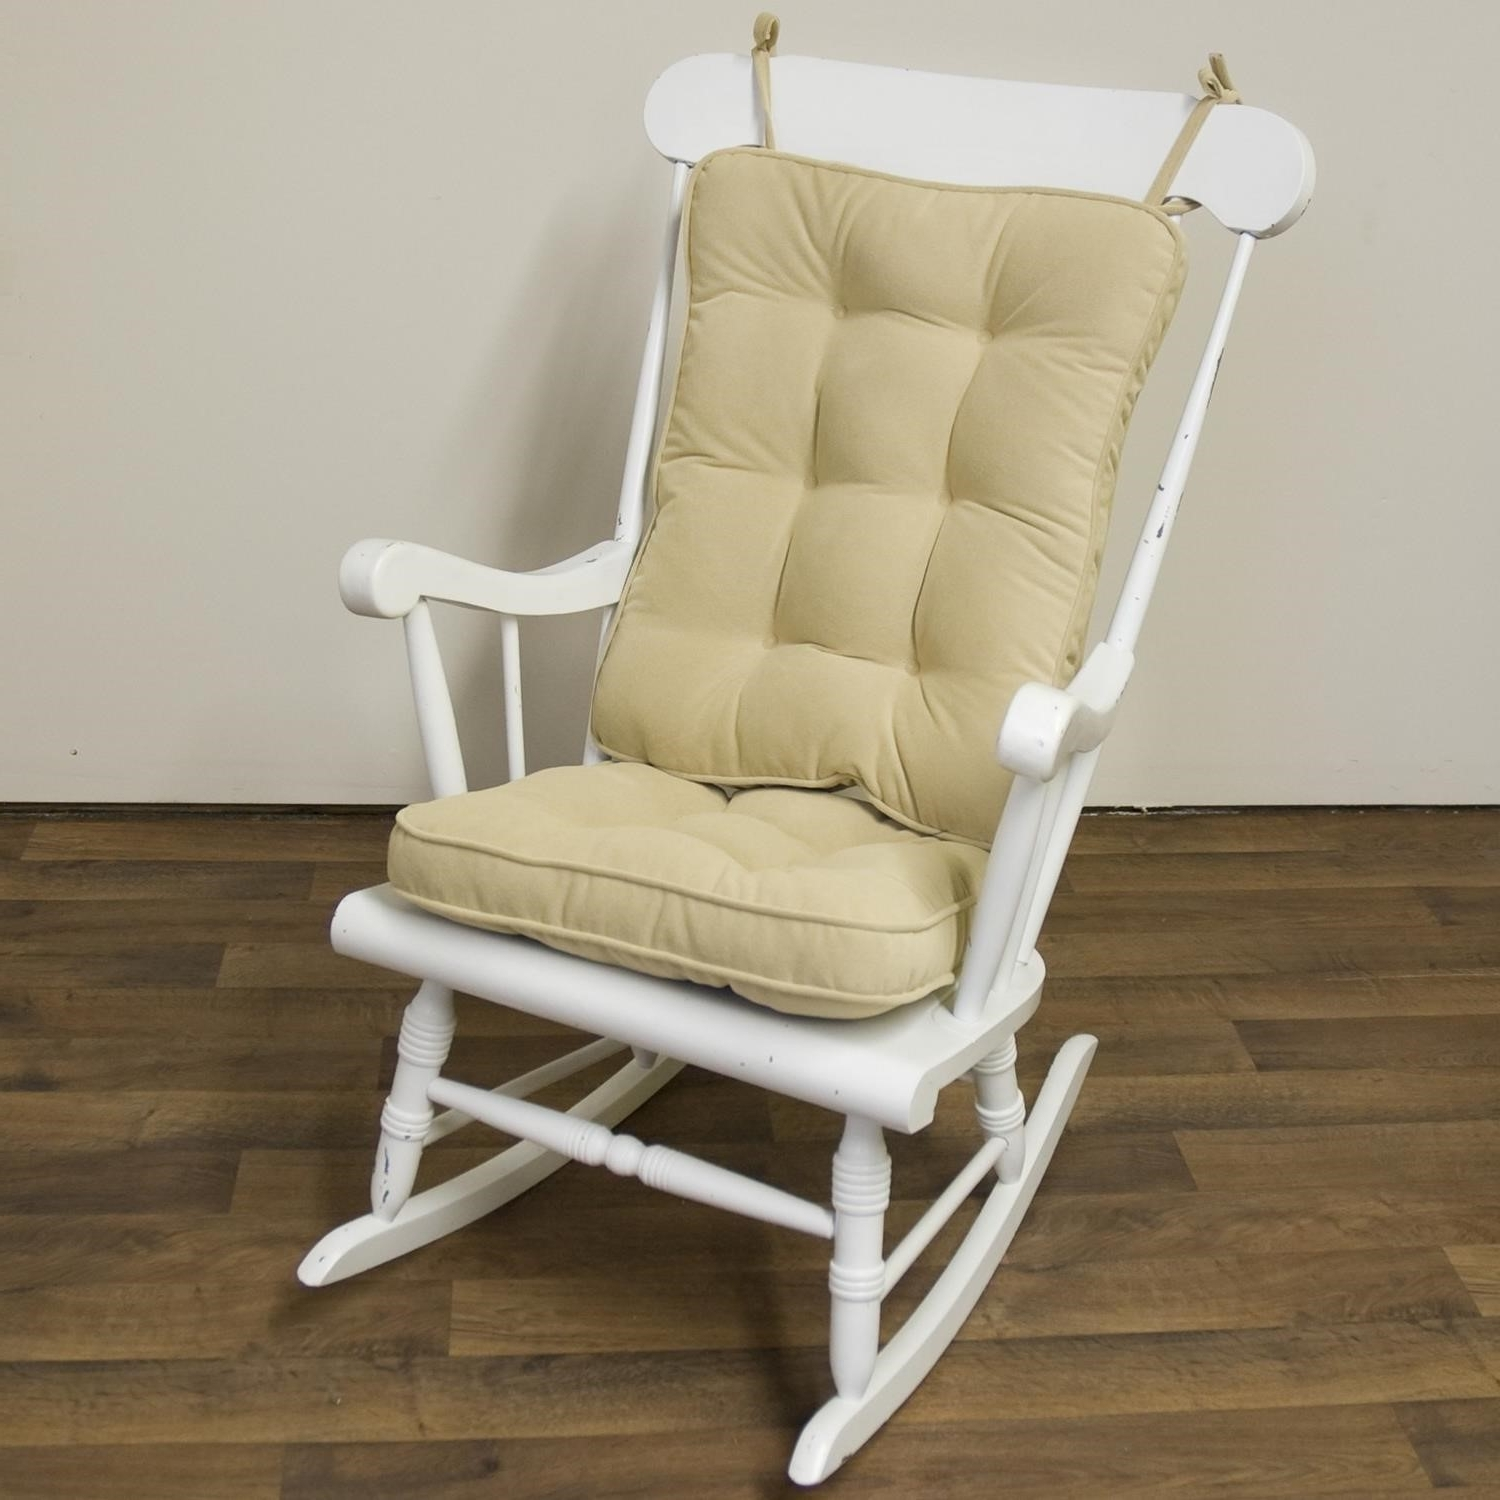 Bedroom: Outstanding Design Of Rocking Chair Cushions For Nursery With Regard To Trendy Rocking Chairs With Cushions (View 6 of 20)